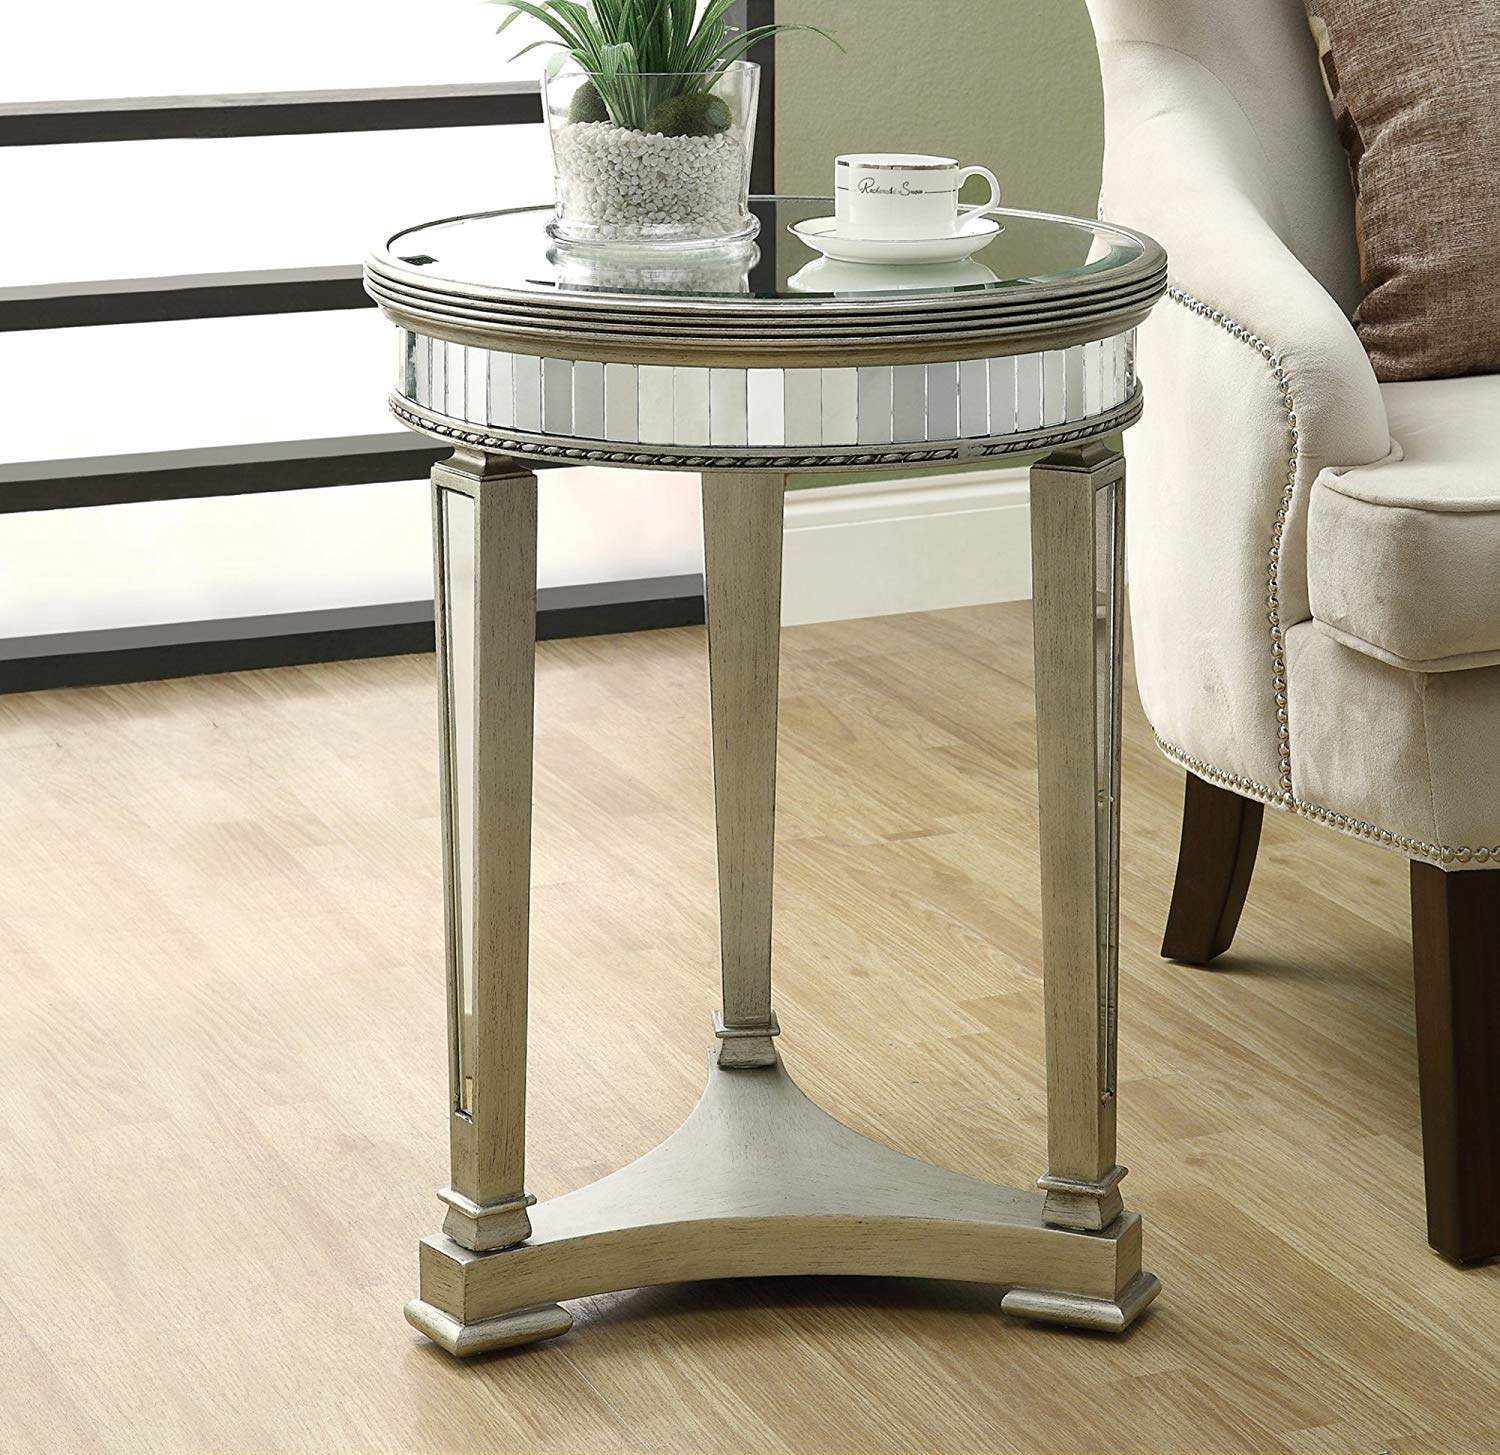 monarch specialties diameter accent table inch mirage mirrored kitchen dining bunnings garden furniture round white tablecloth home goods coffee stained glass floor lamp shades